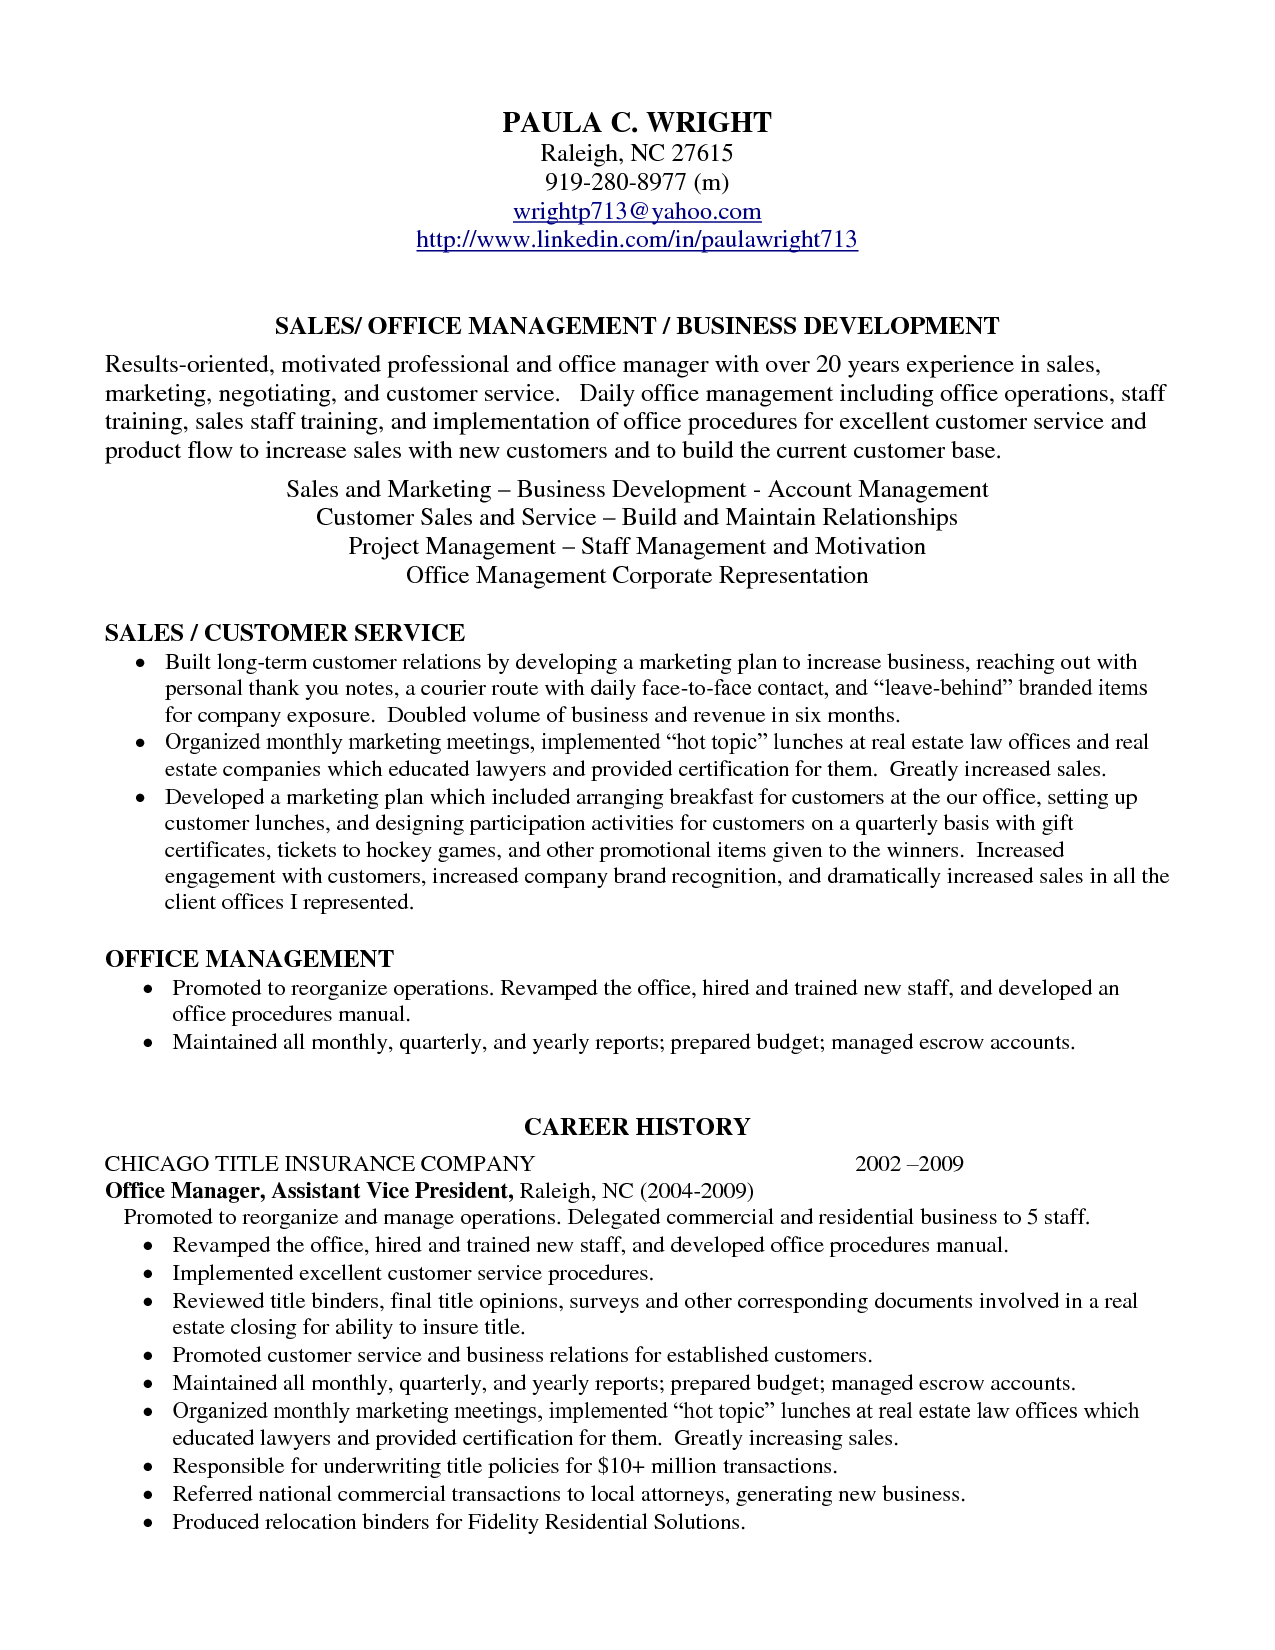 Resume Writing  Resume Overview Samples